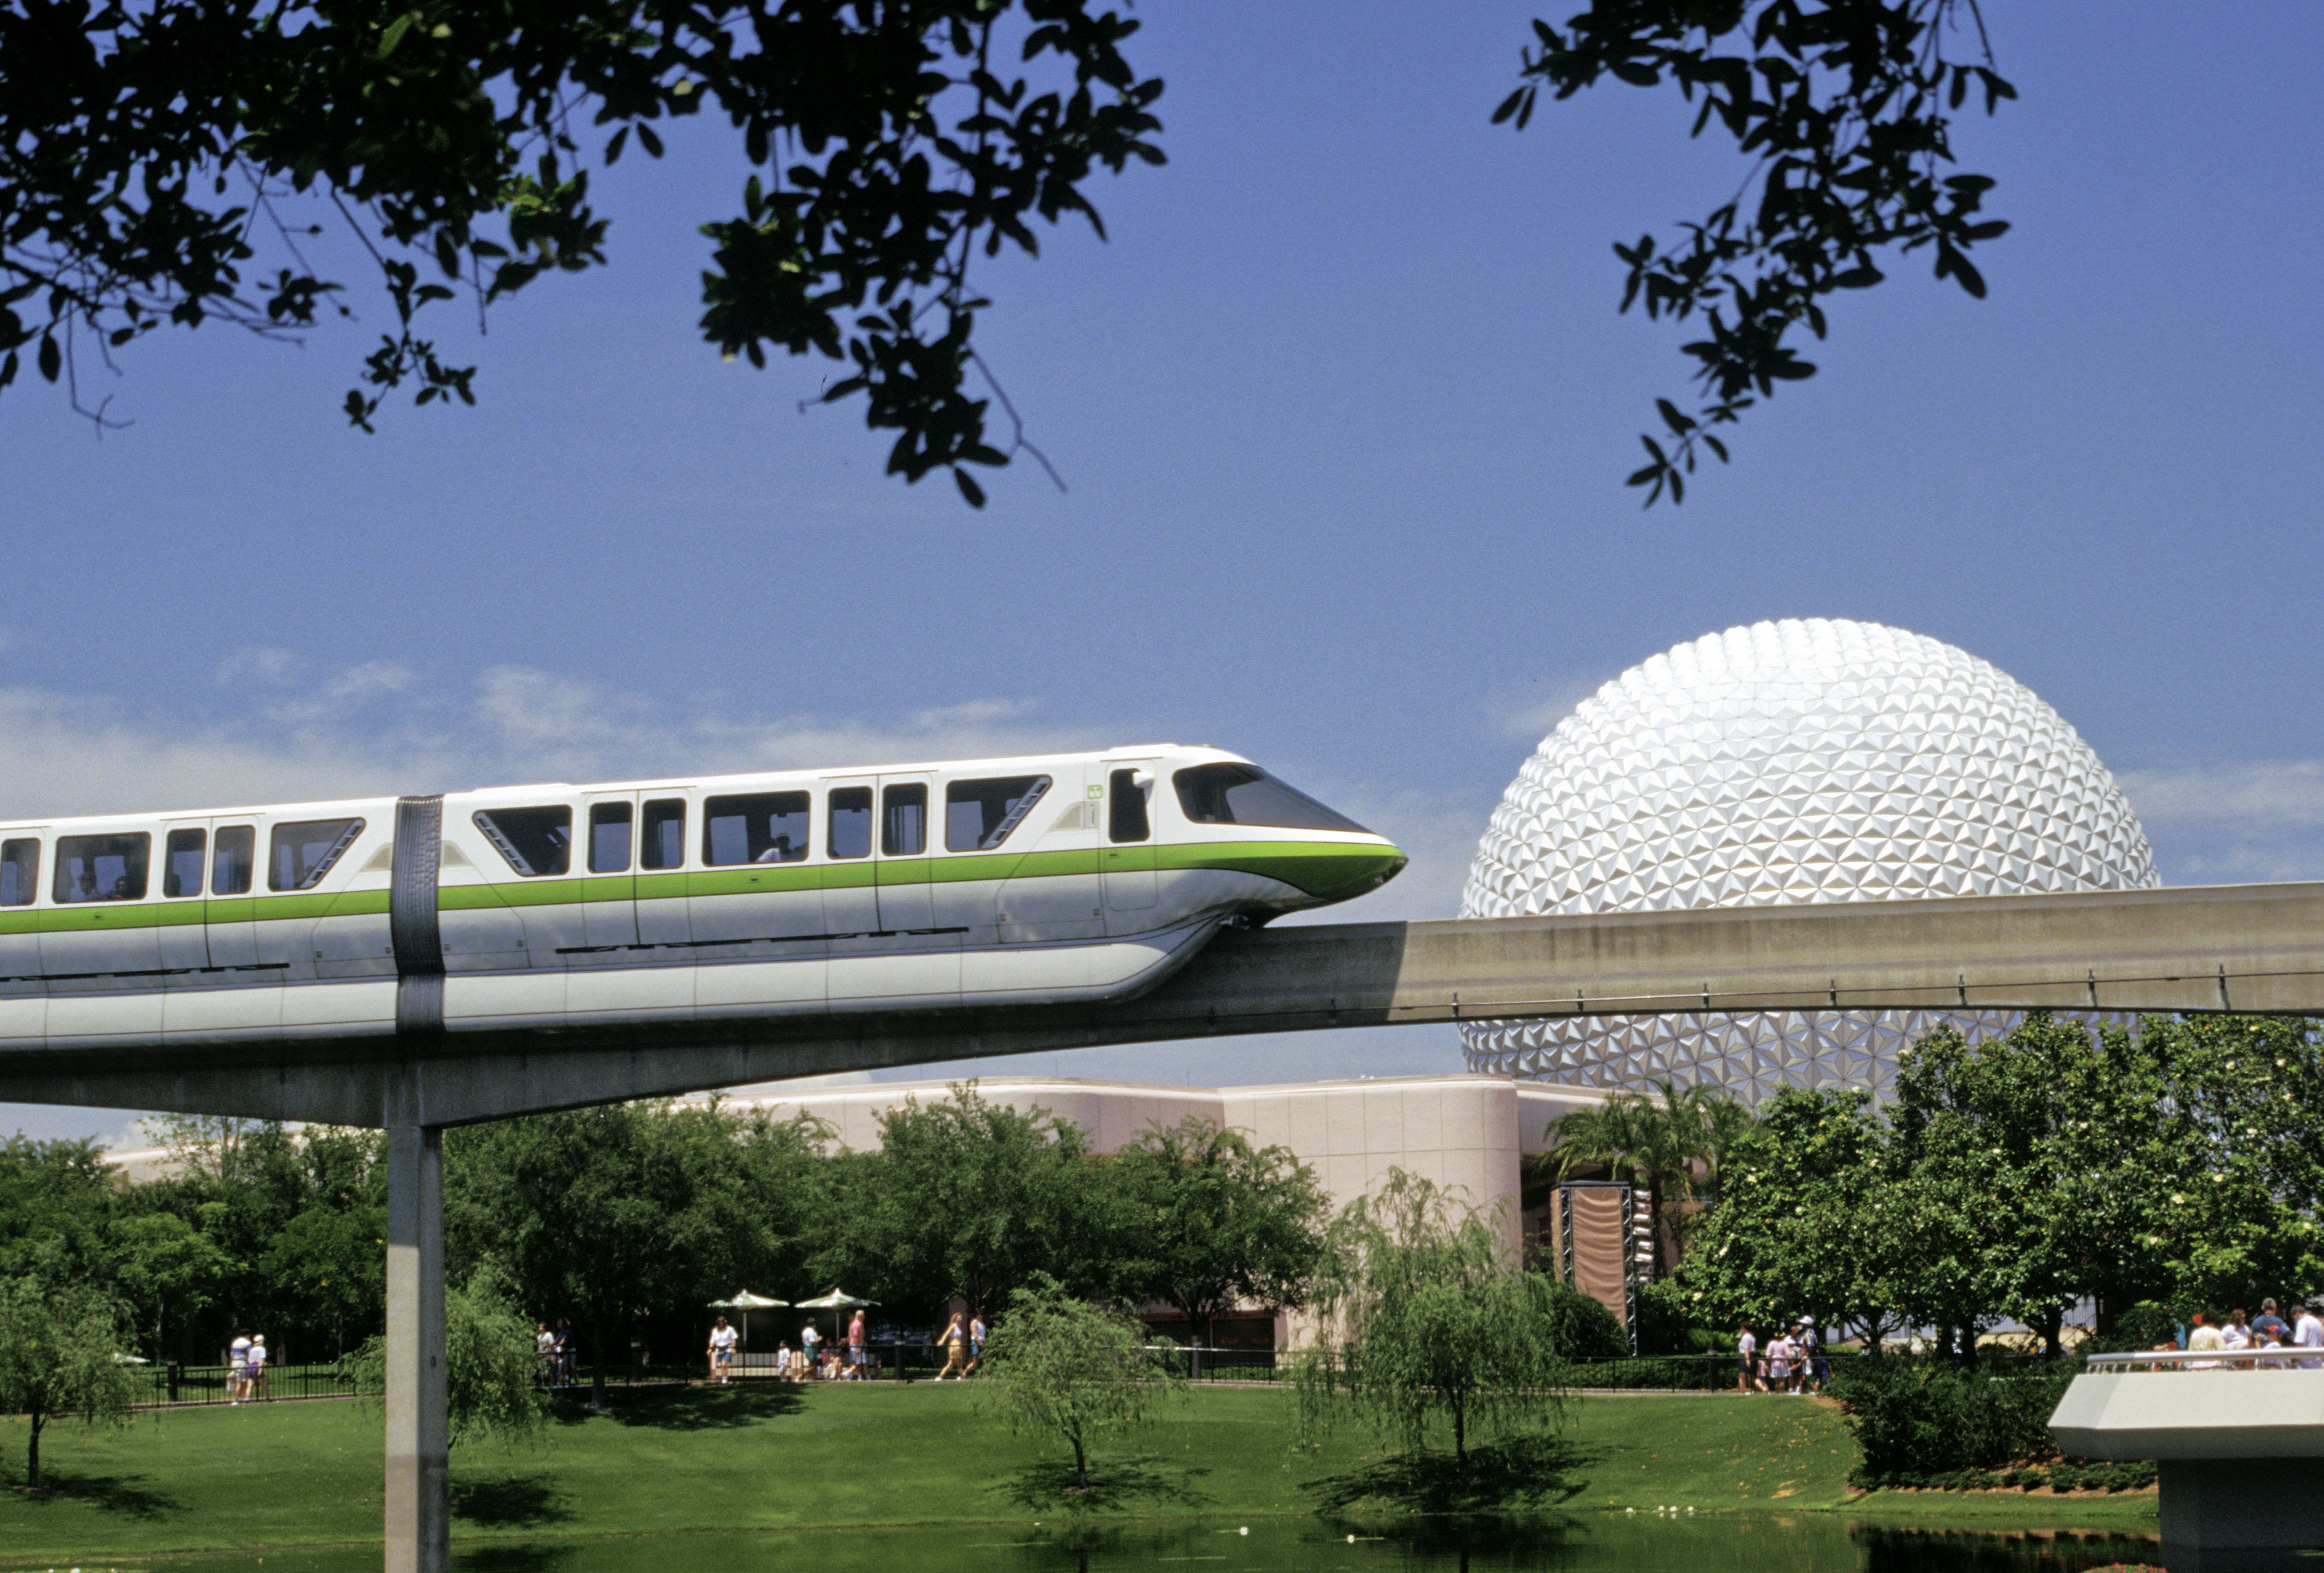 Florida, Orlando, Epcot Center, View Including Sphere And Monorail.